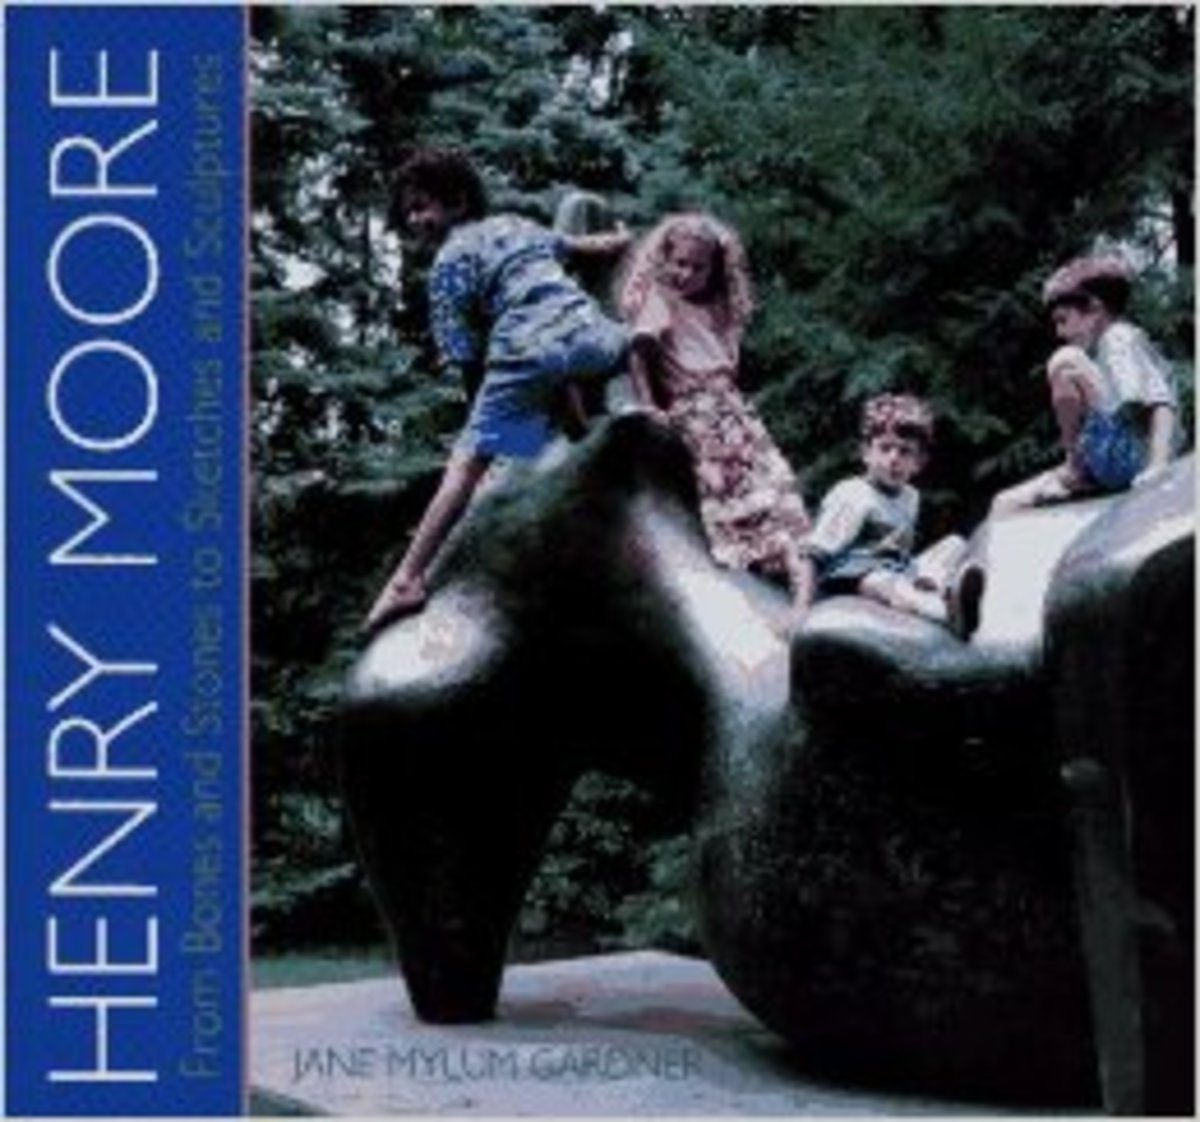 Henry Moore: From Bones and Stones to Sketches and Sculptures by Jane Mylum Gardner